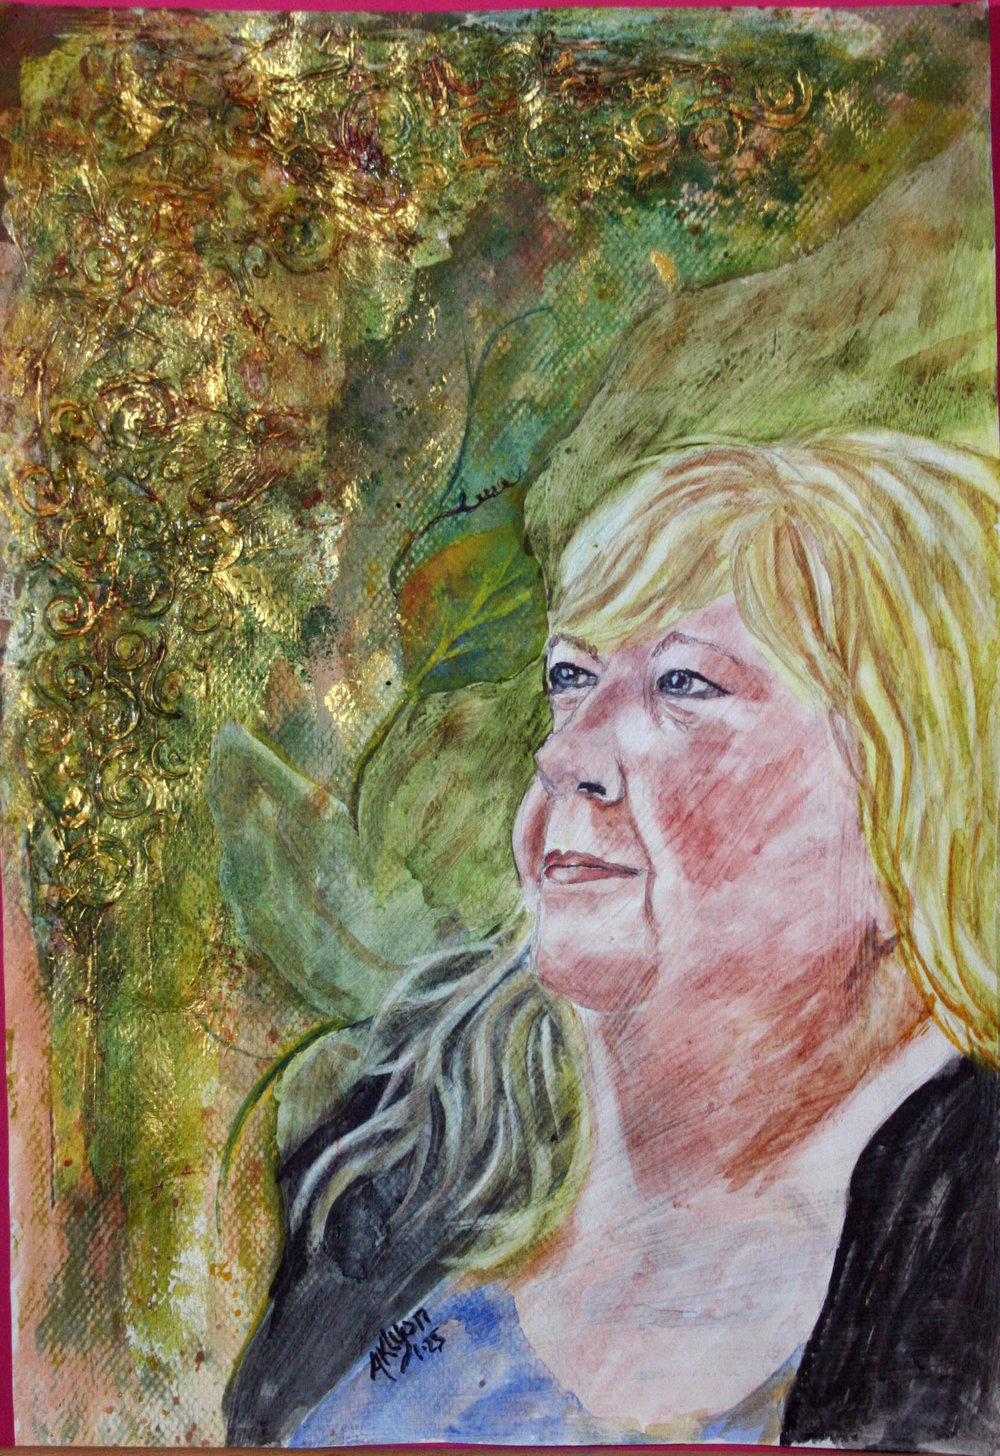 Anne Lyon did this mixed media drawing.